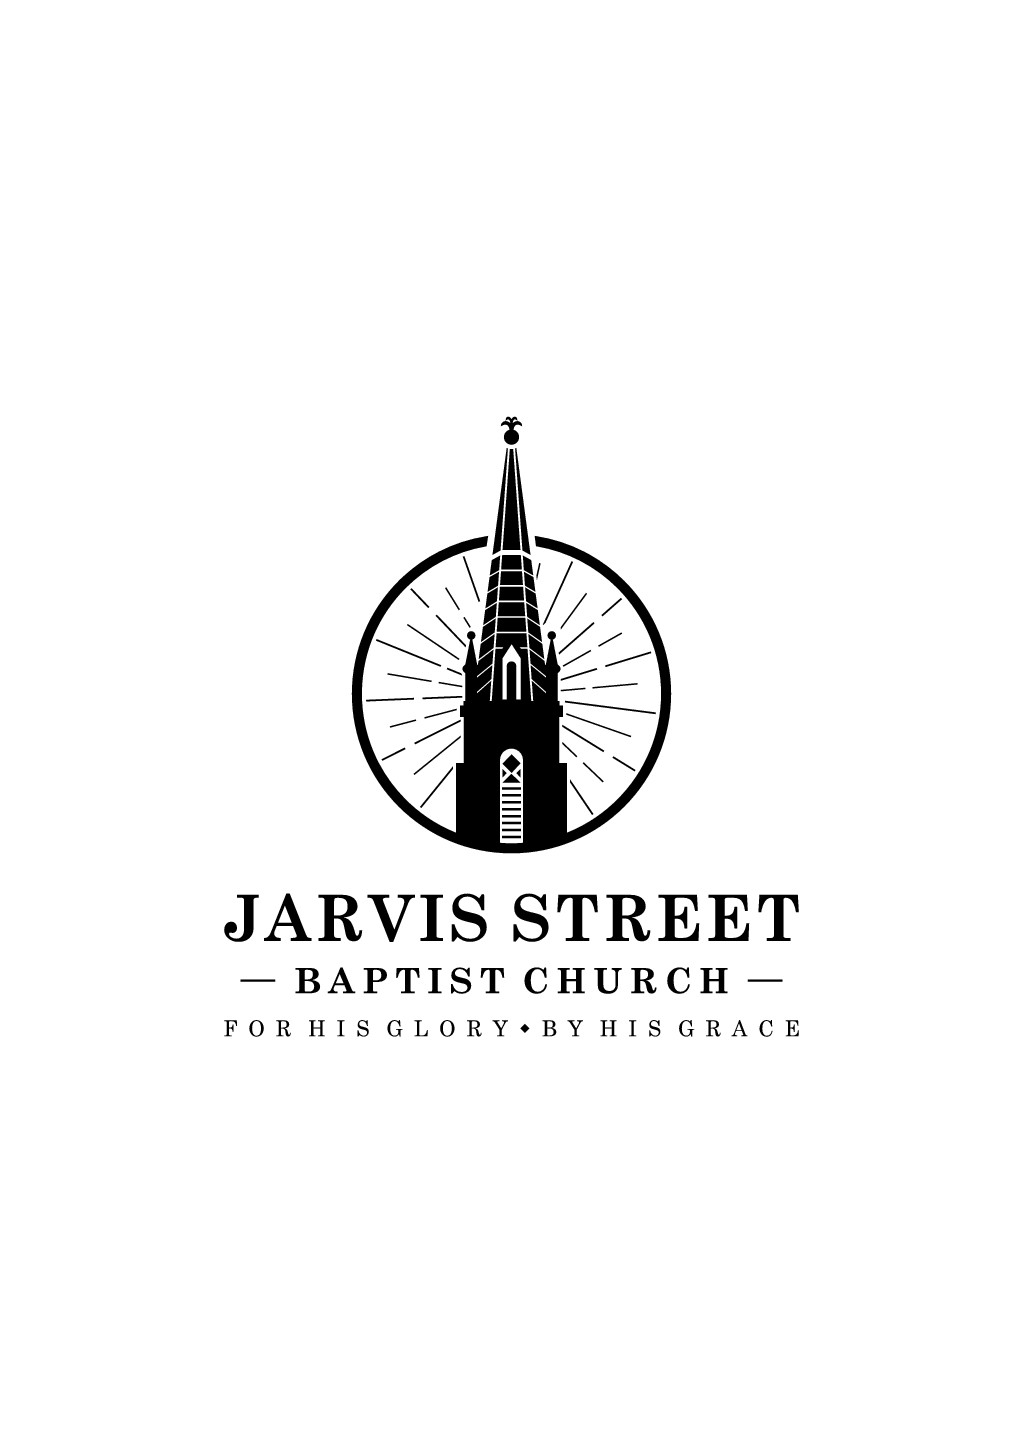 Church needs a new fresh logo.